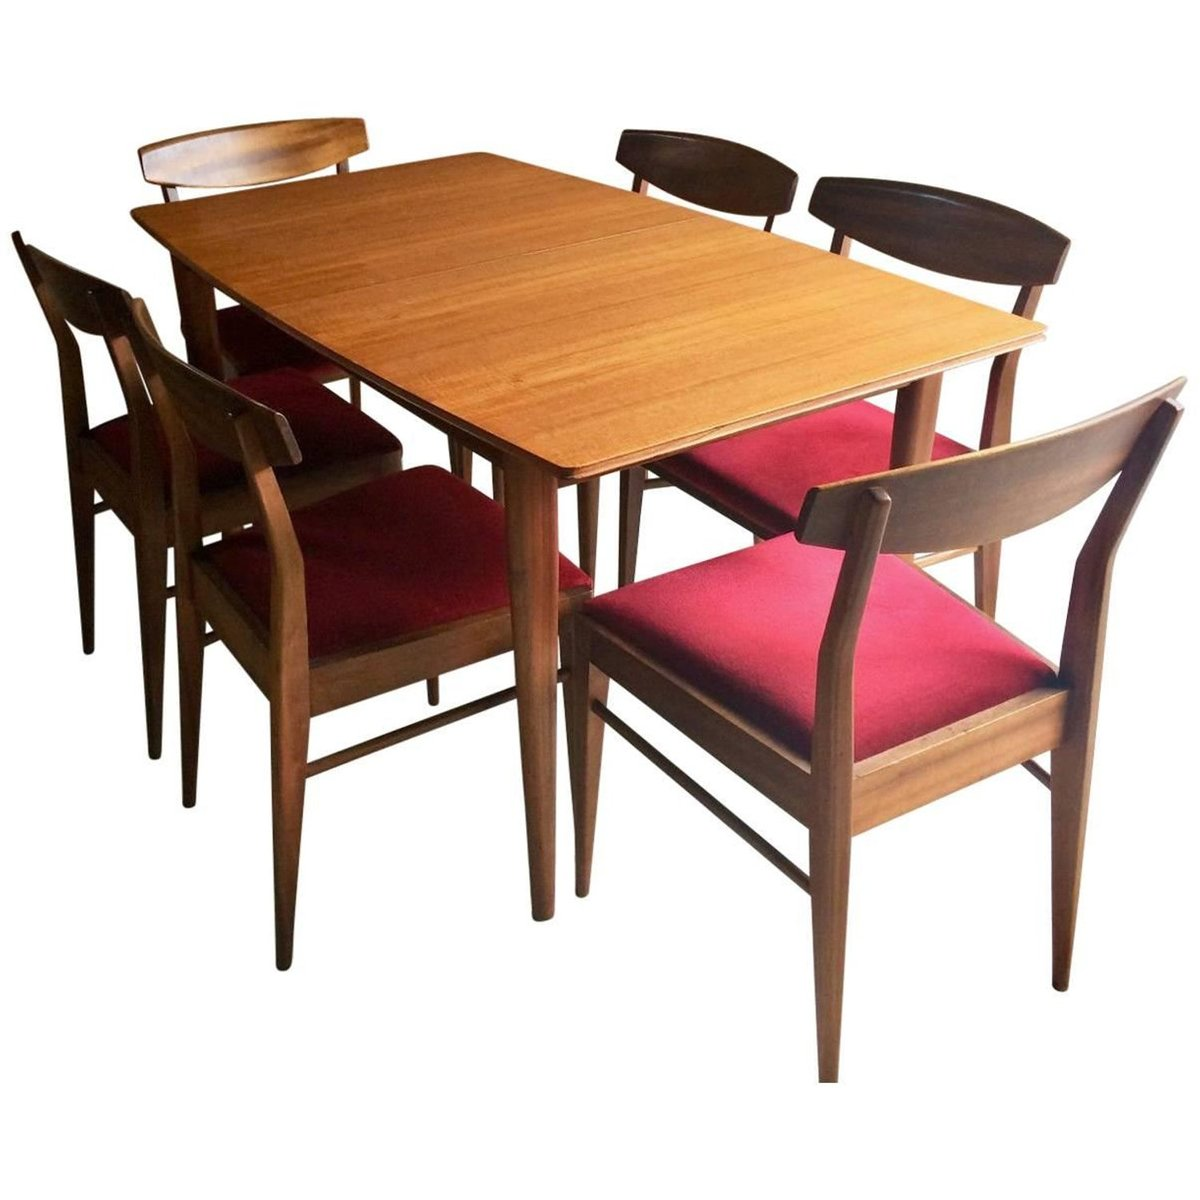 Solid Teak Extending Dining Table And 6 Chairs From McIntosh, 1970s